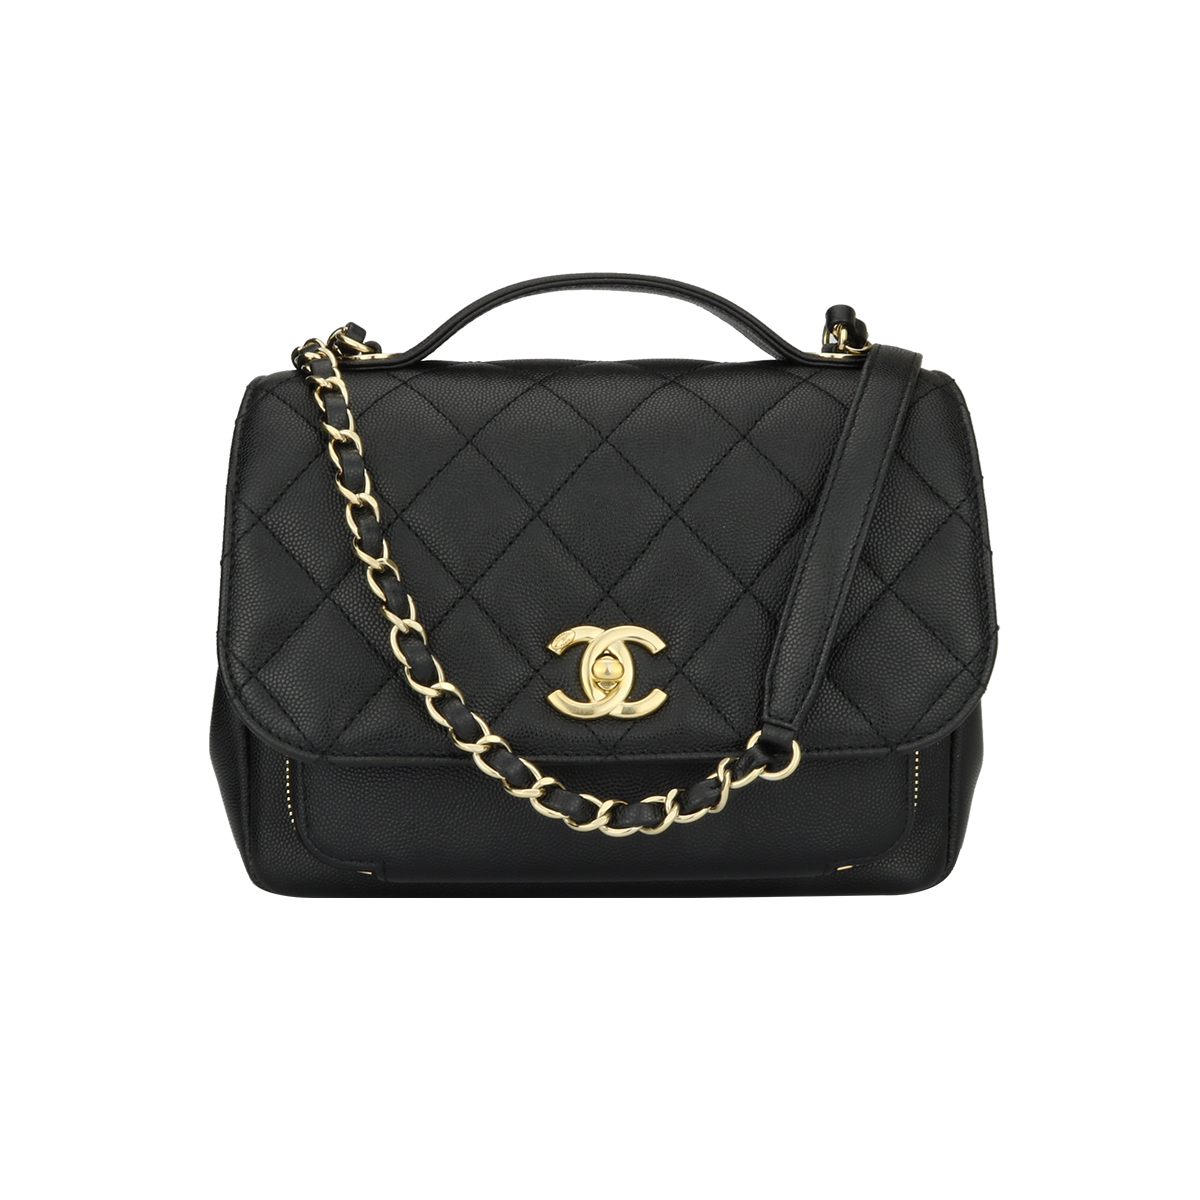 1844457efad4 Home/Chanel/CHANEL Business Affinity Medium Black Caviar Champagne Hardware  2017. ; 